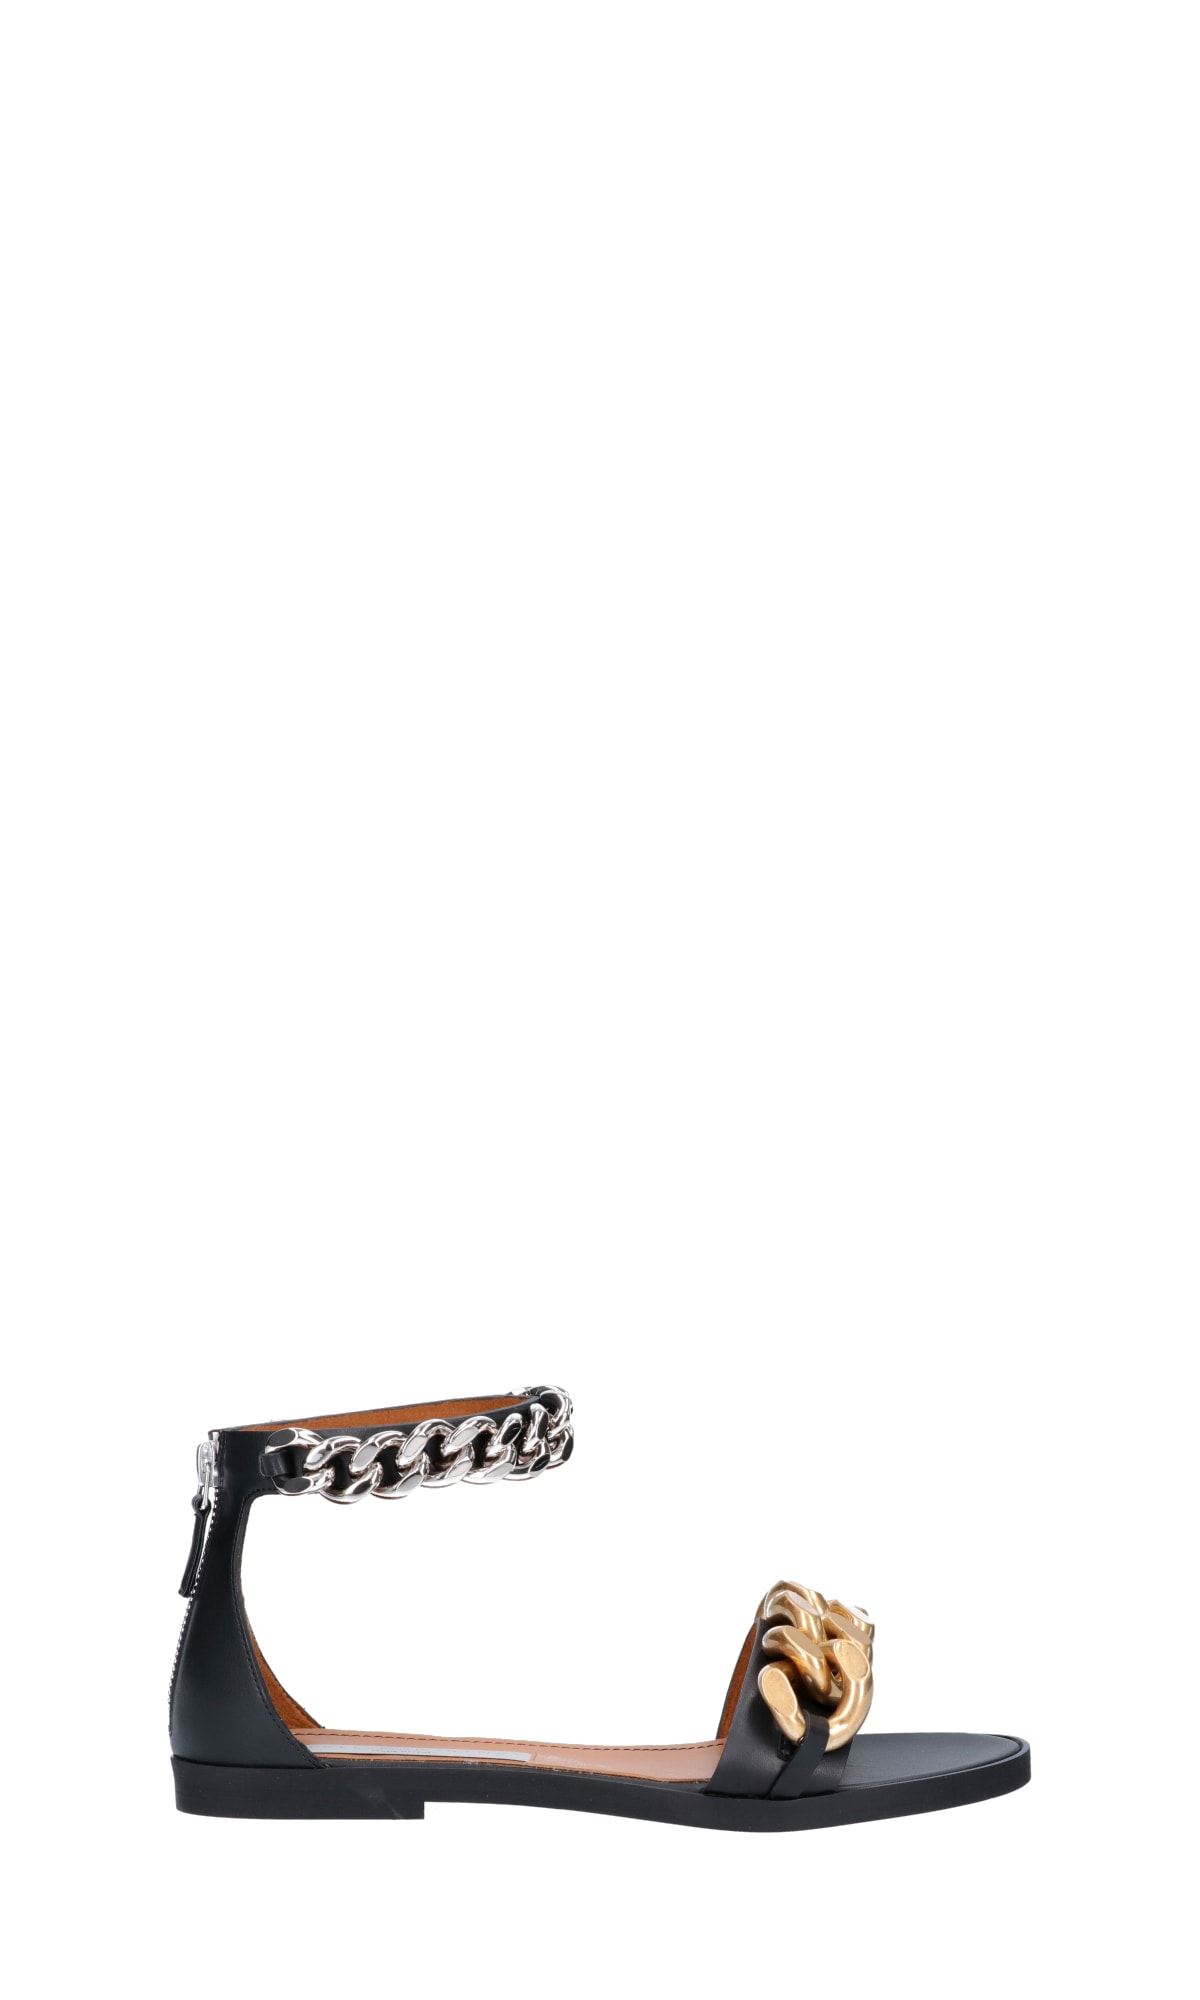 Buy Stella McCartney Sandals online, shop Stella McCartney shoes with free shipping